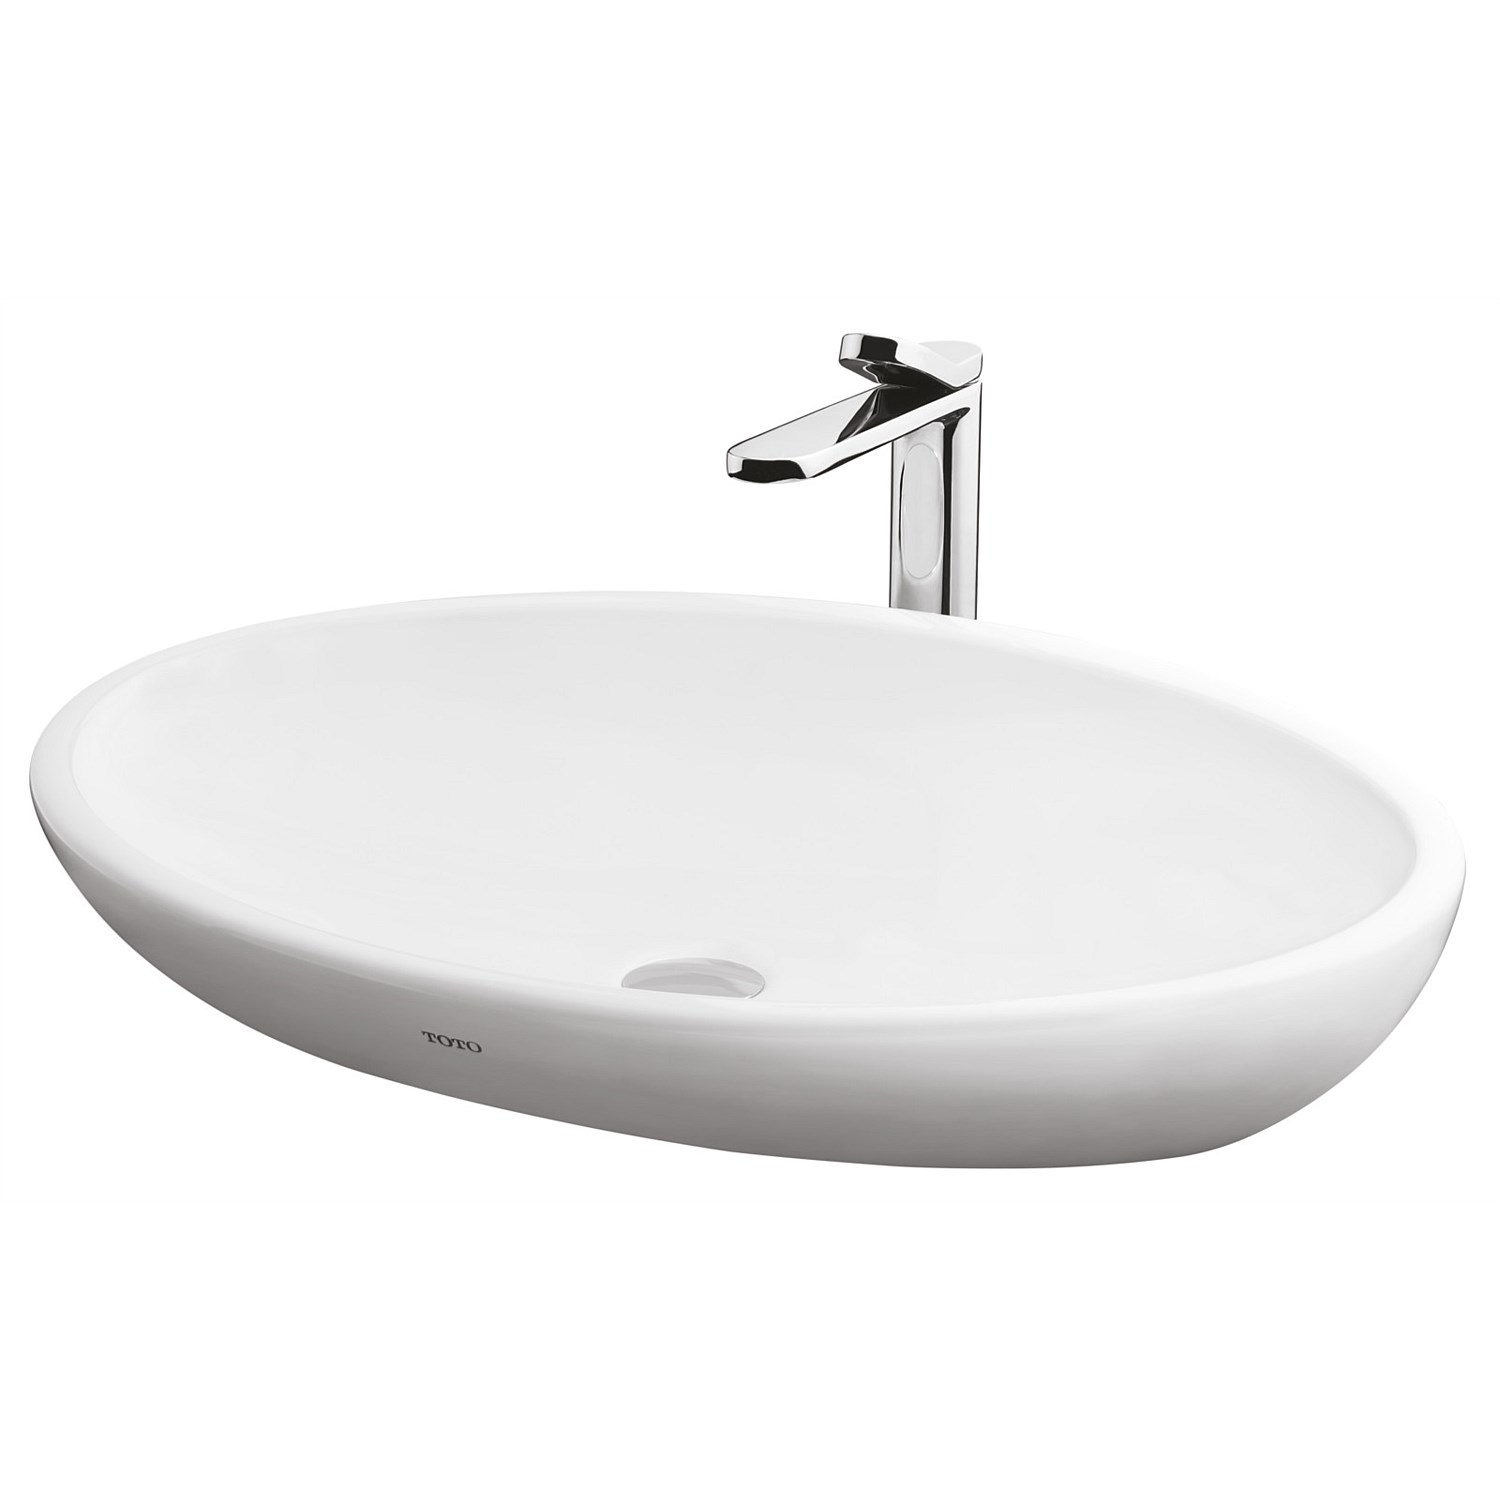 Basins | Plumbing World - Toto Le Muse 650mm Oval Counter Top Basin